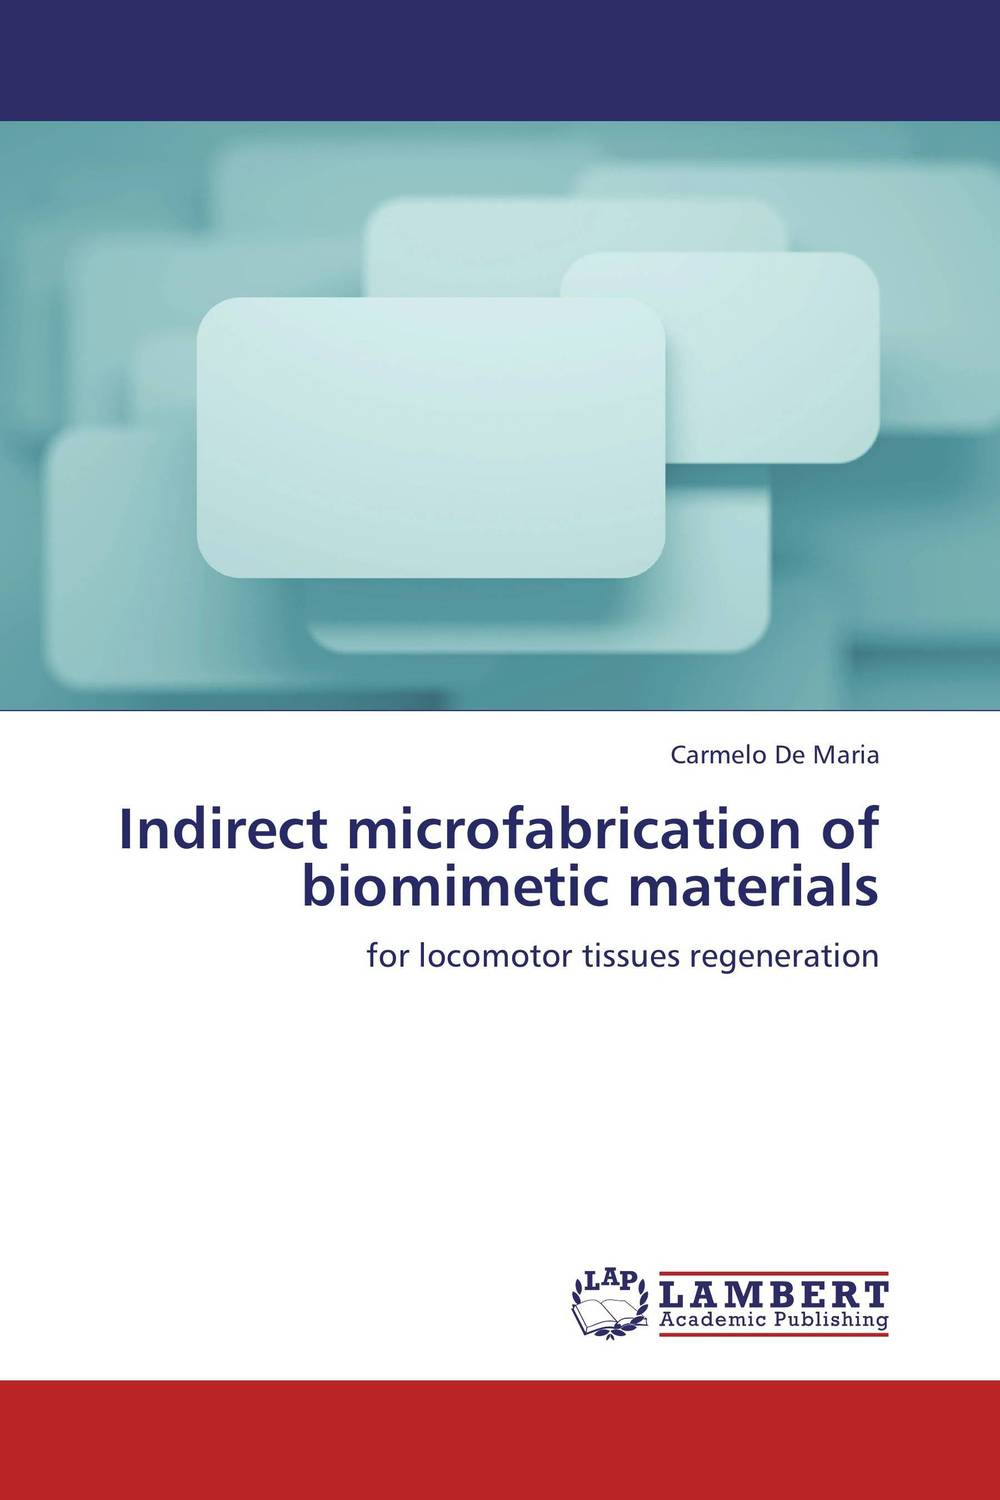 Indirect microfabrication of biomimetic materials велосипед stels navigator 130 3sp 2016